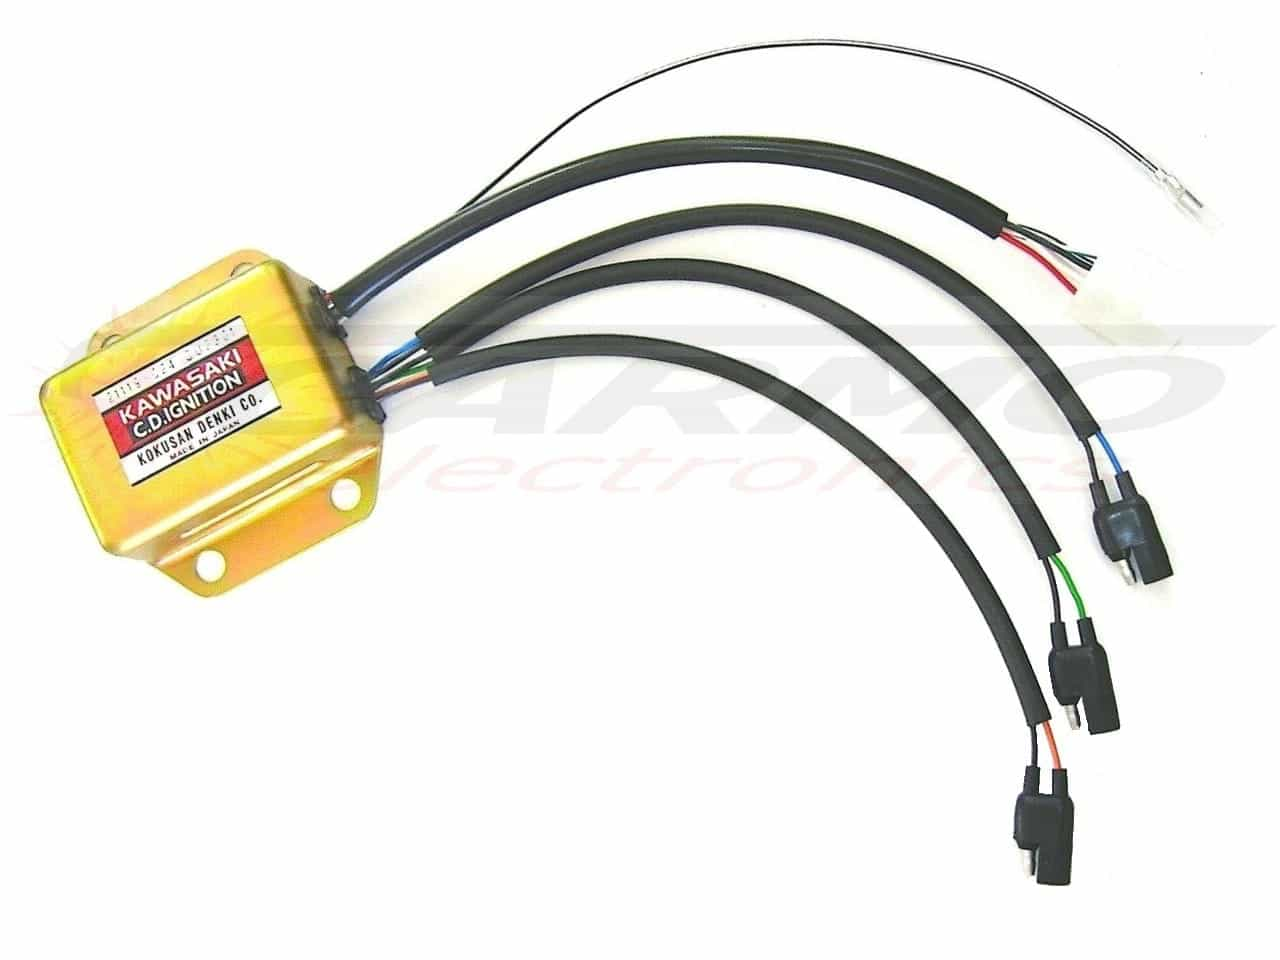 Kawasaki Carmo Electronics The Place For Parts Or Gpz1000rx Wiring Diagram Kh400 Cu2301 21119 024 Cdi Igniter Module